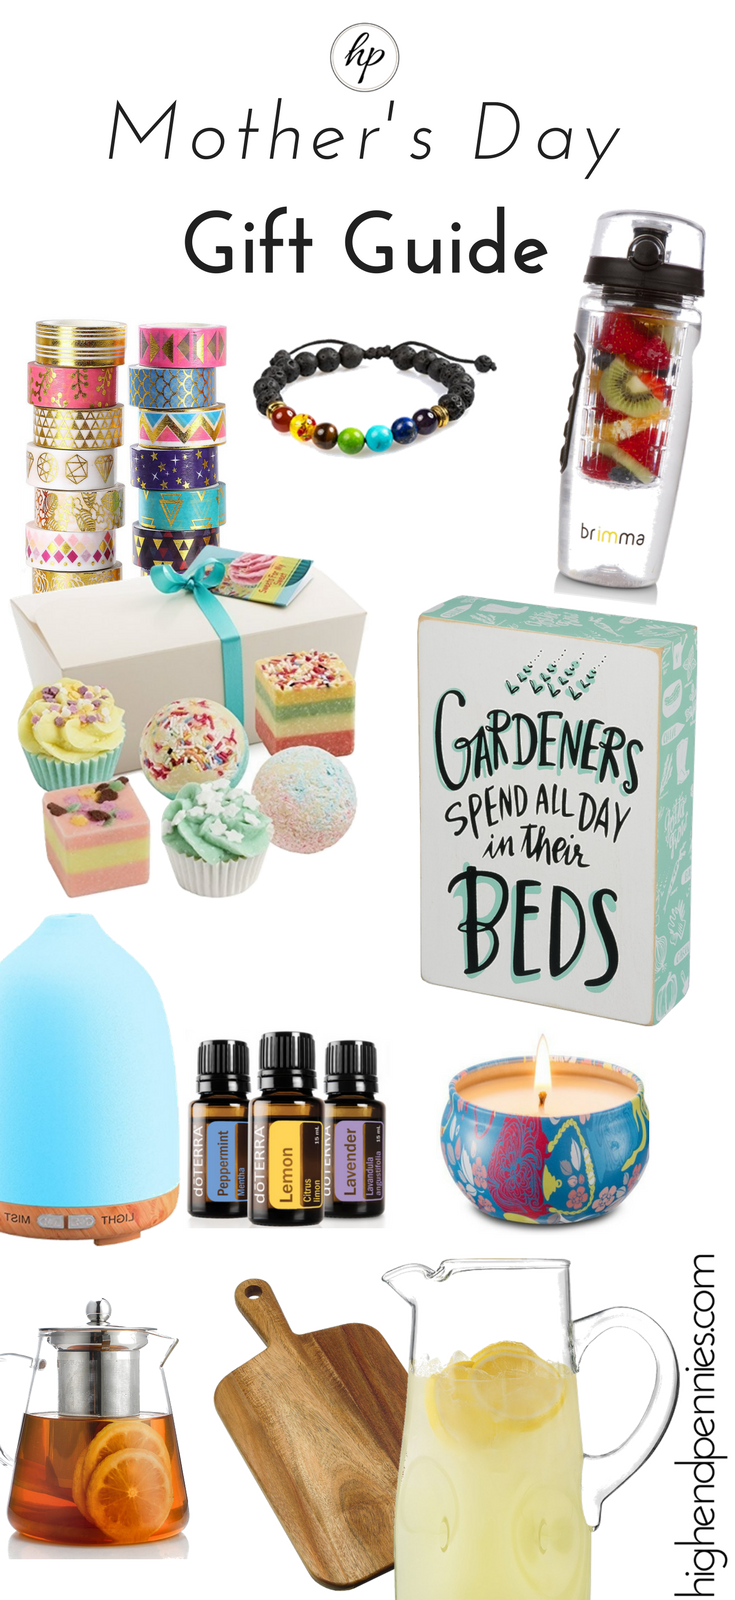 Mother's Day Gift Guide Under 20 (With images) Good